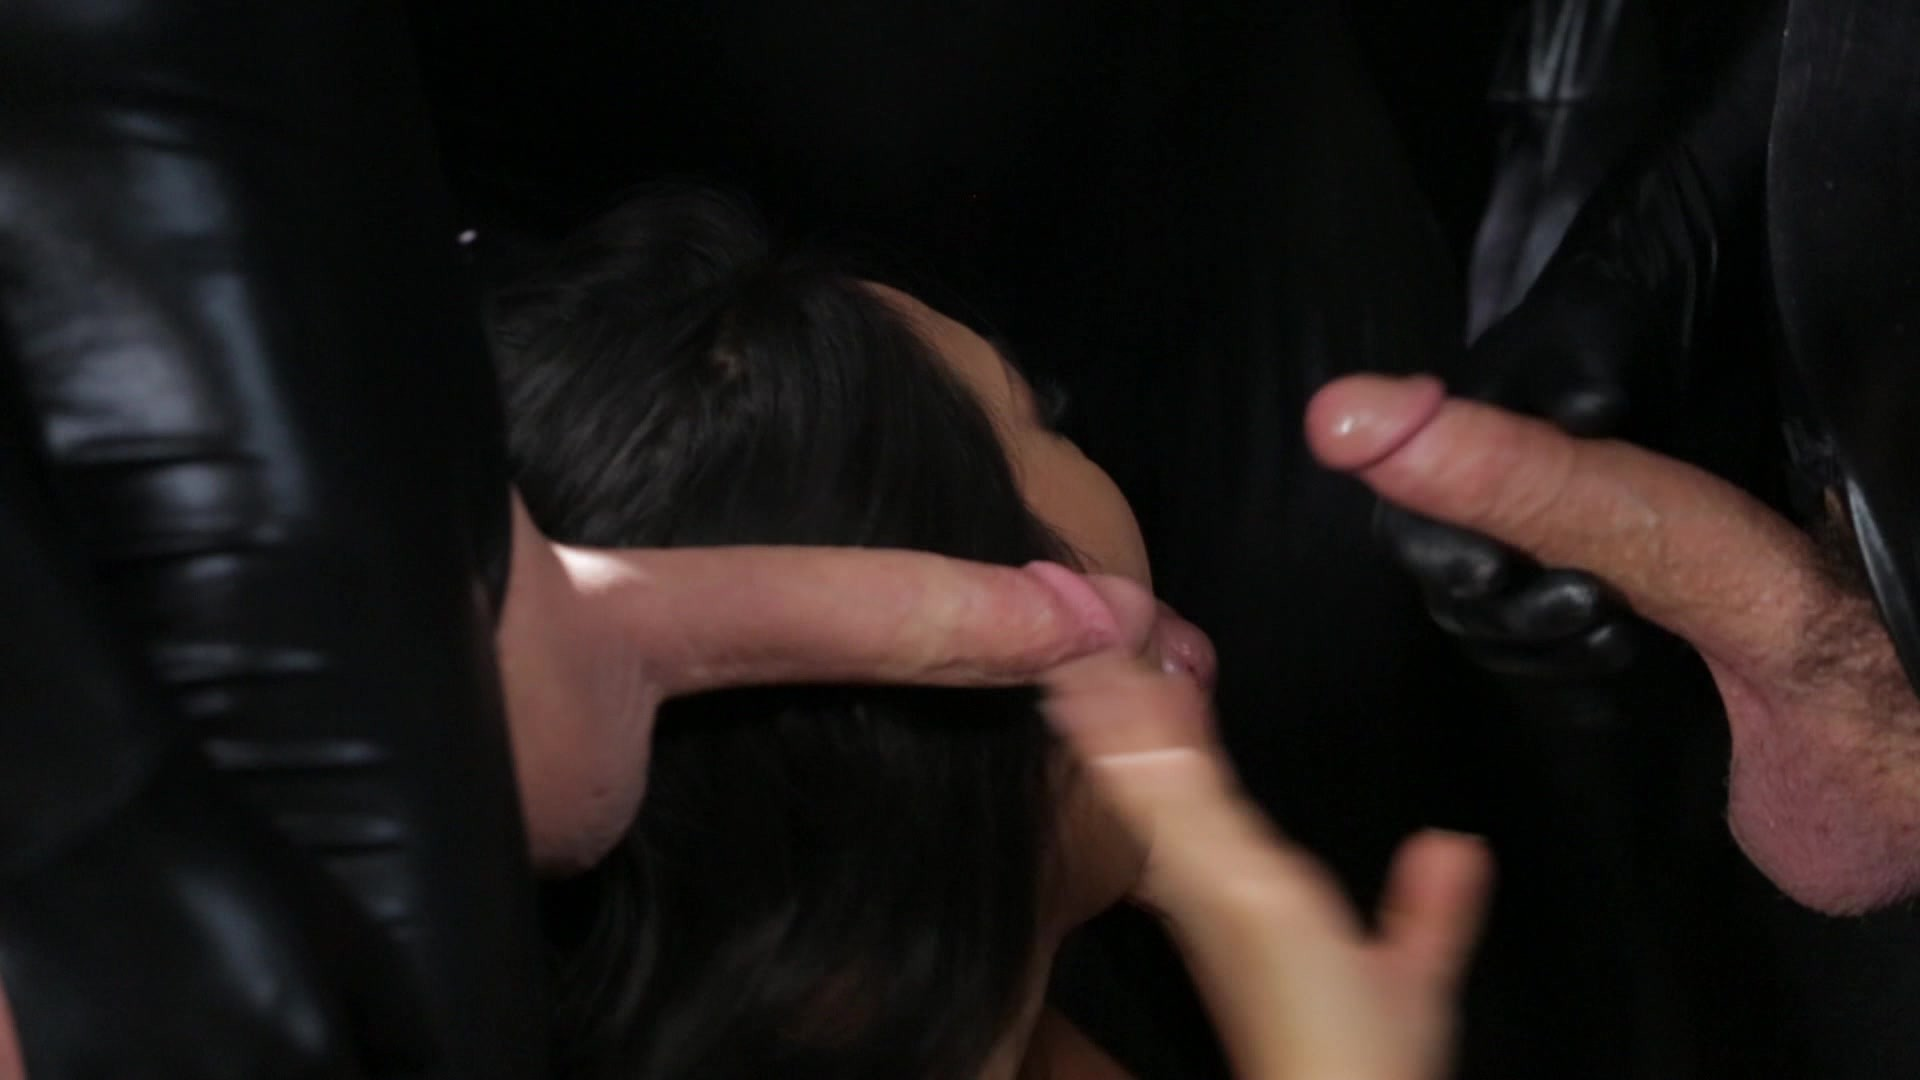 Scene with Asa Akira - image 11 out of 20